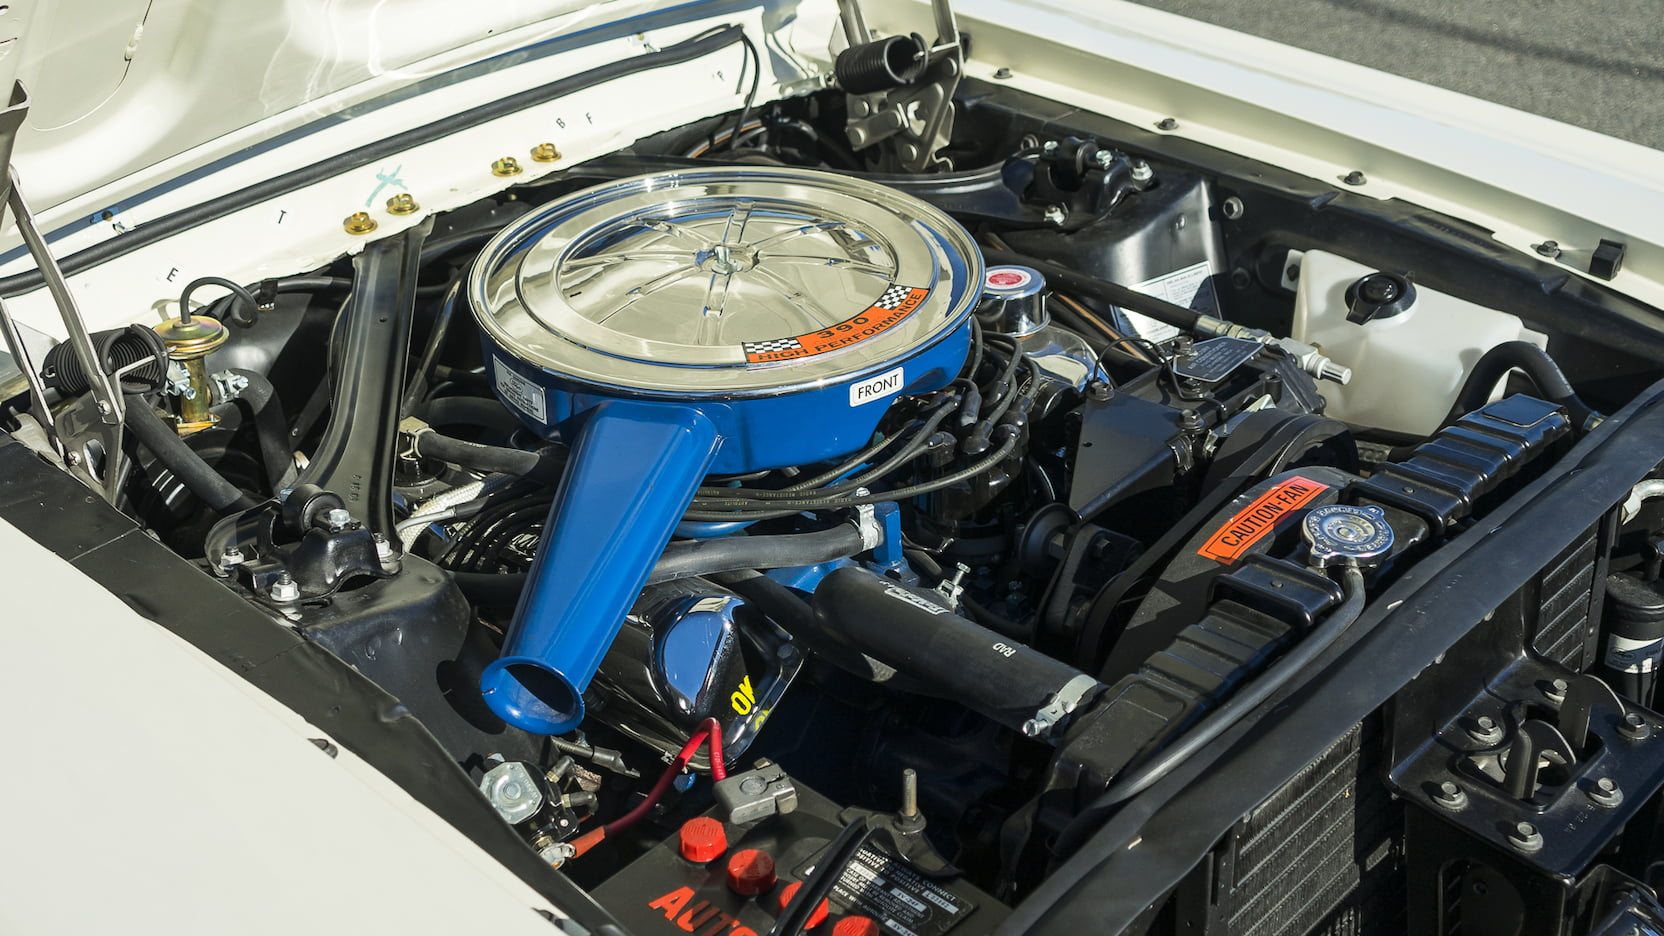 1967 Mercury Cougar engine